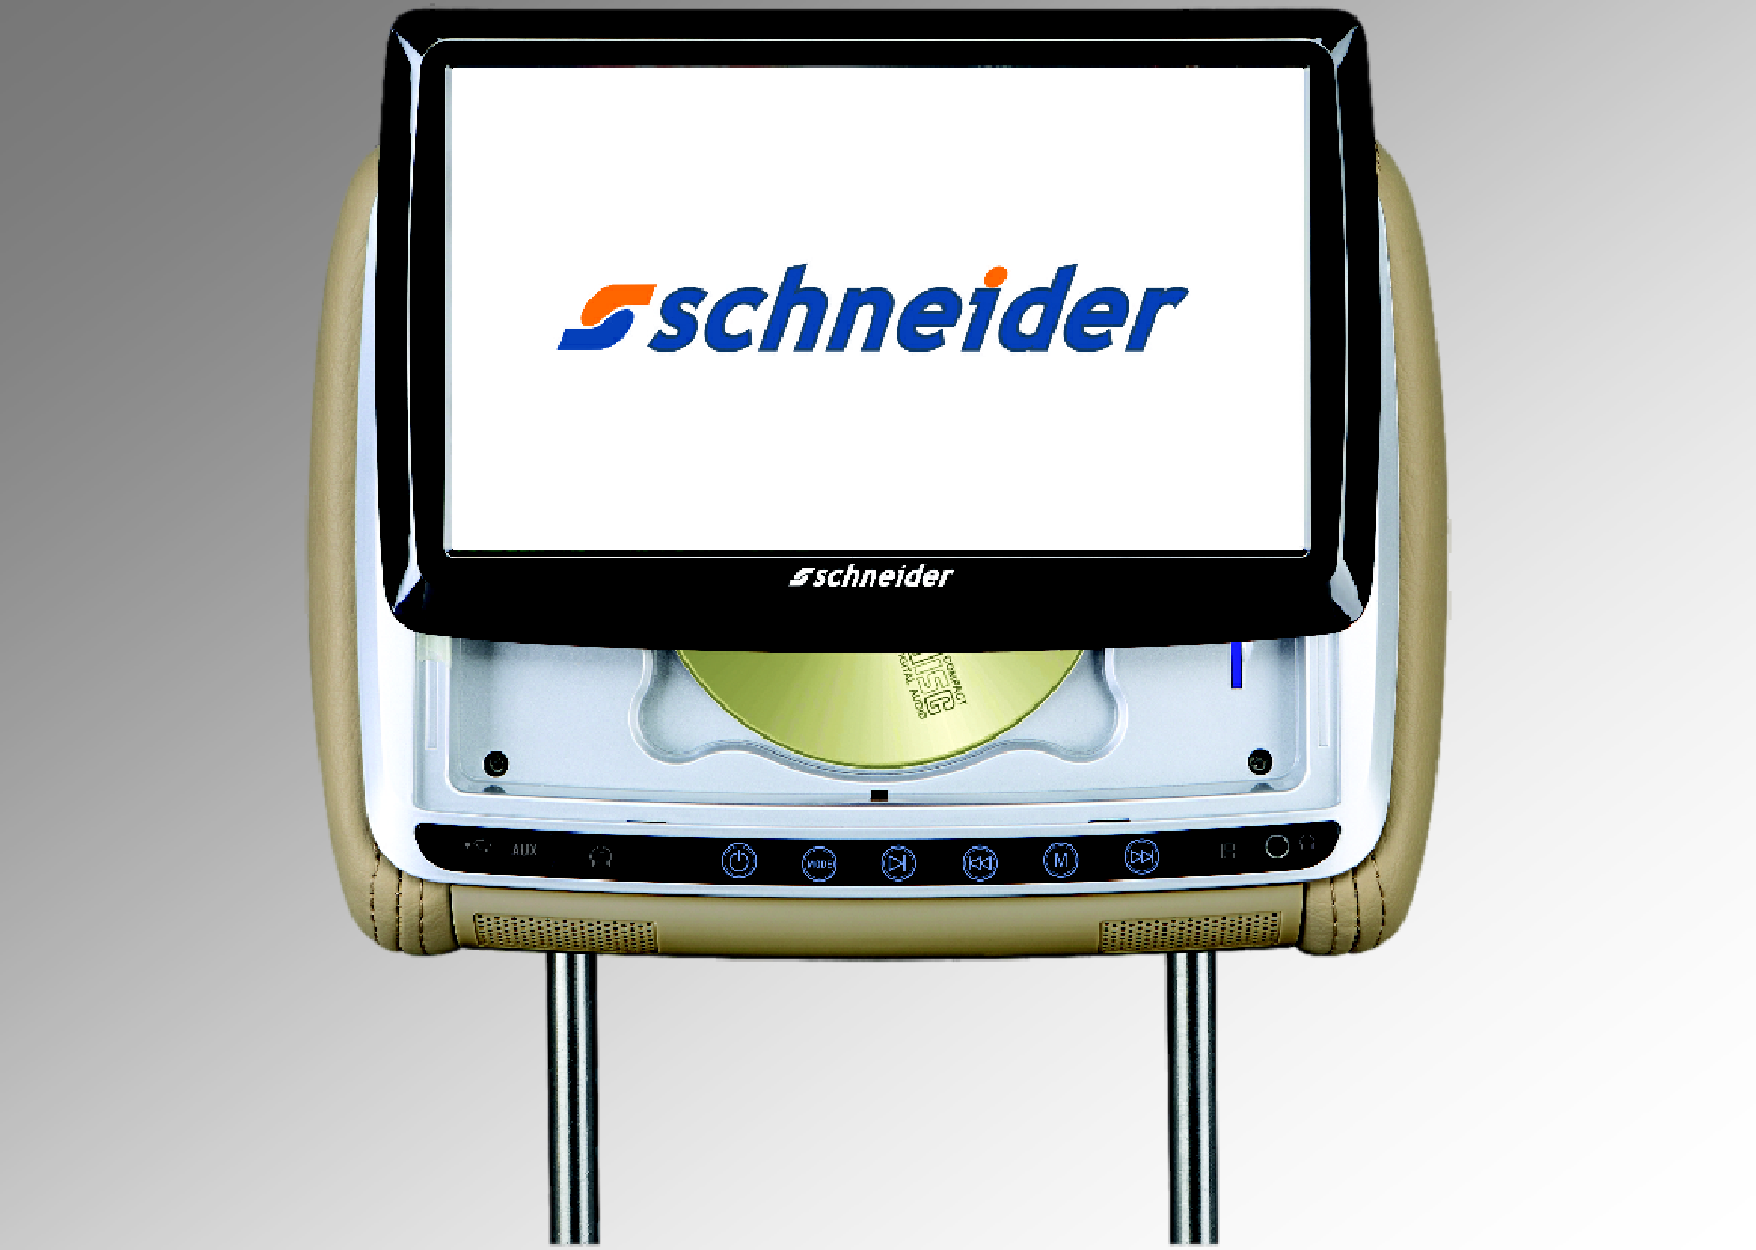 schneider player